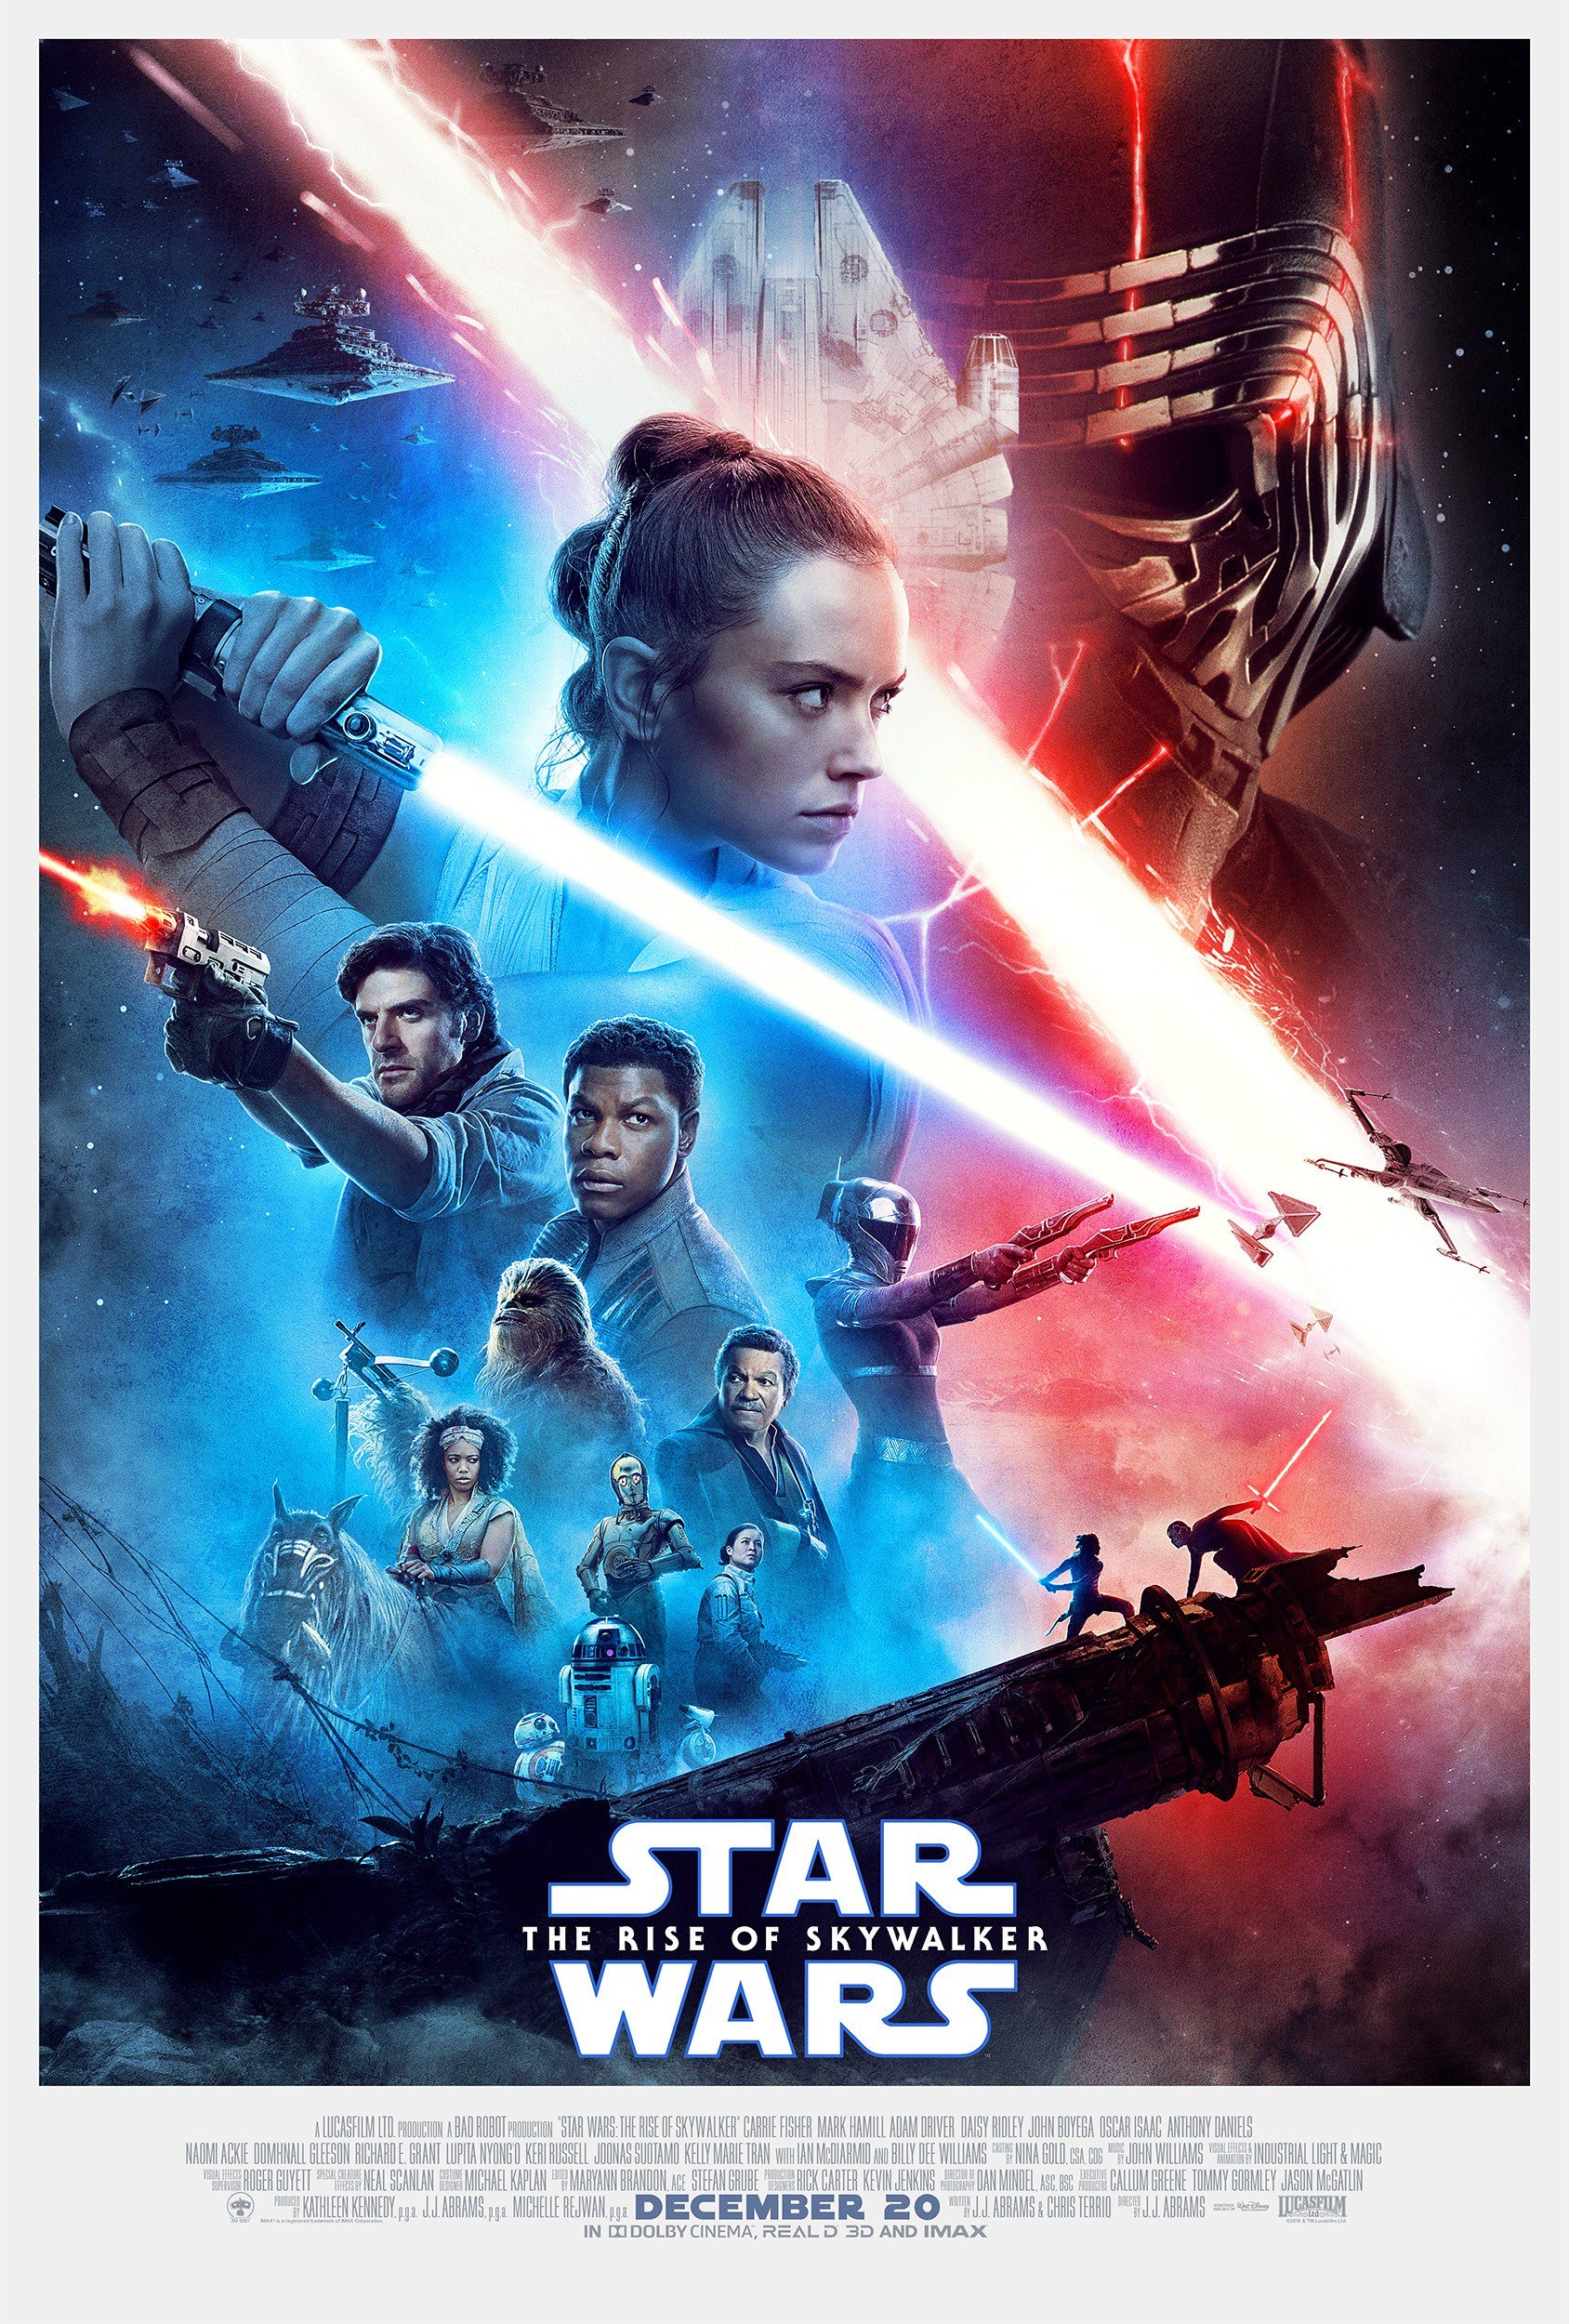 Affiche Poster star wars ascension rise skywalker disney lucasfilm